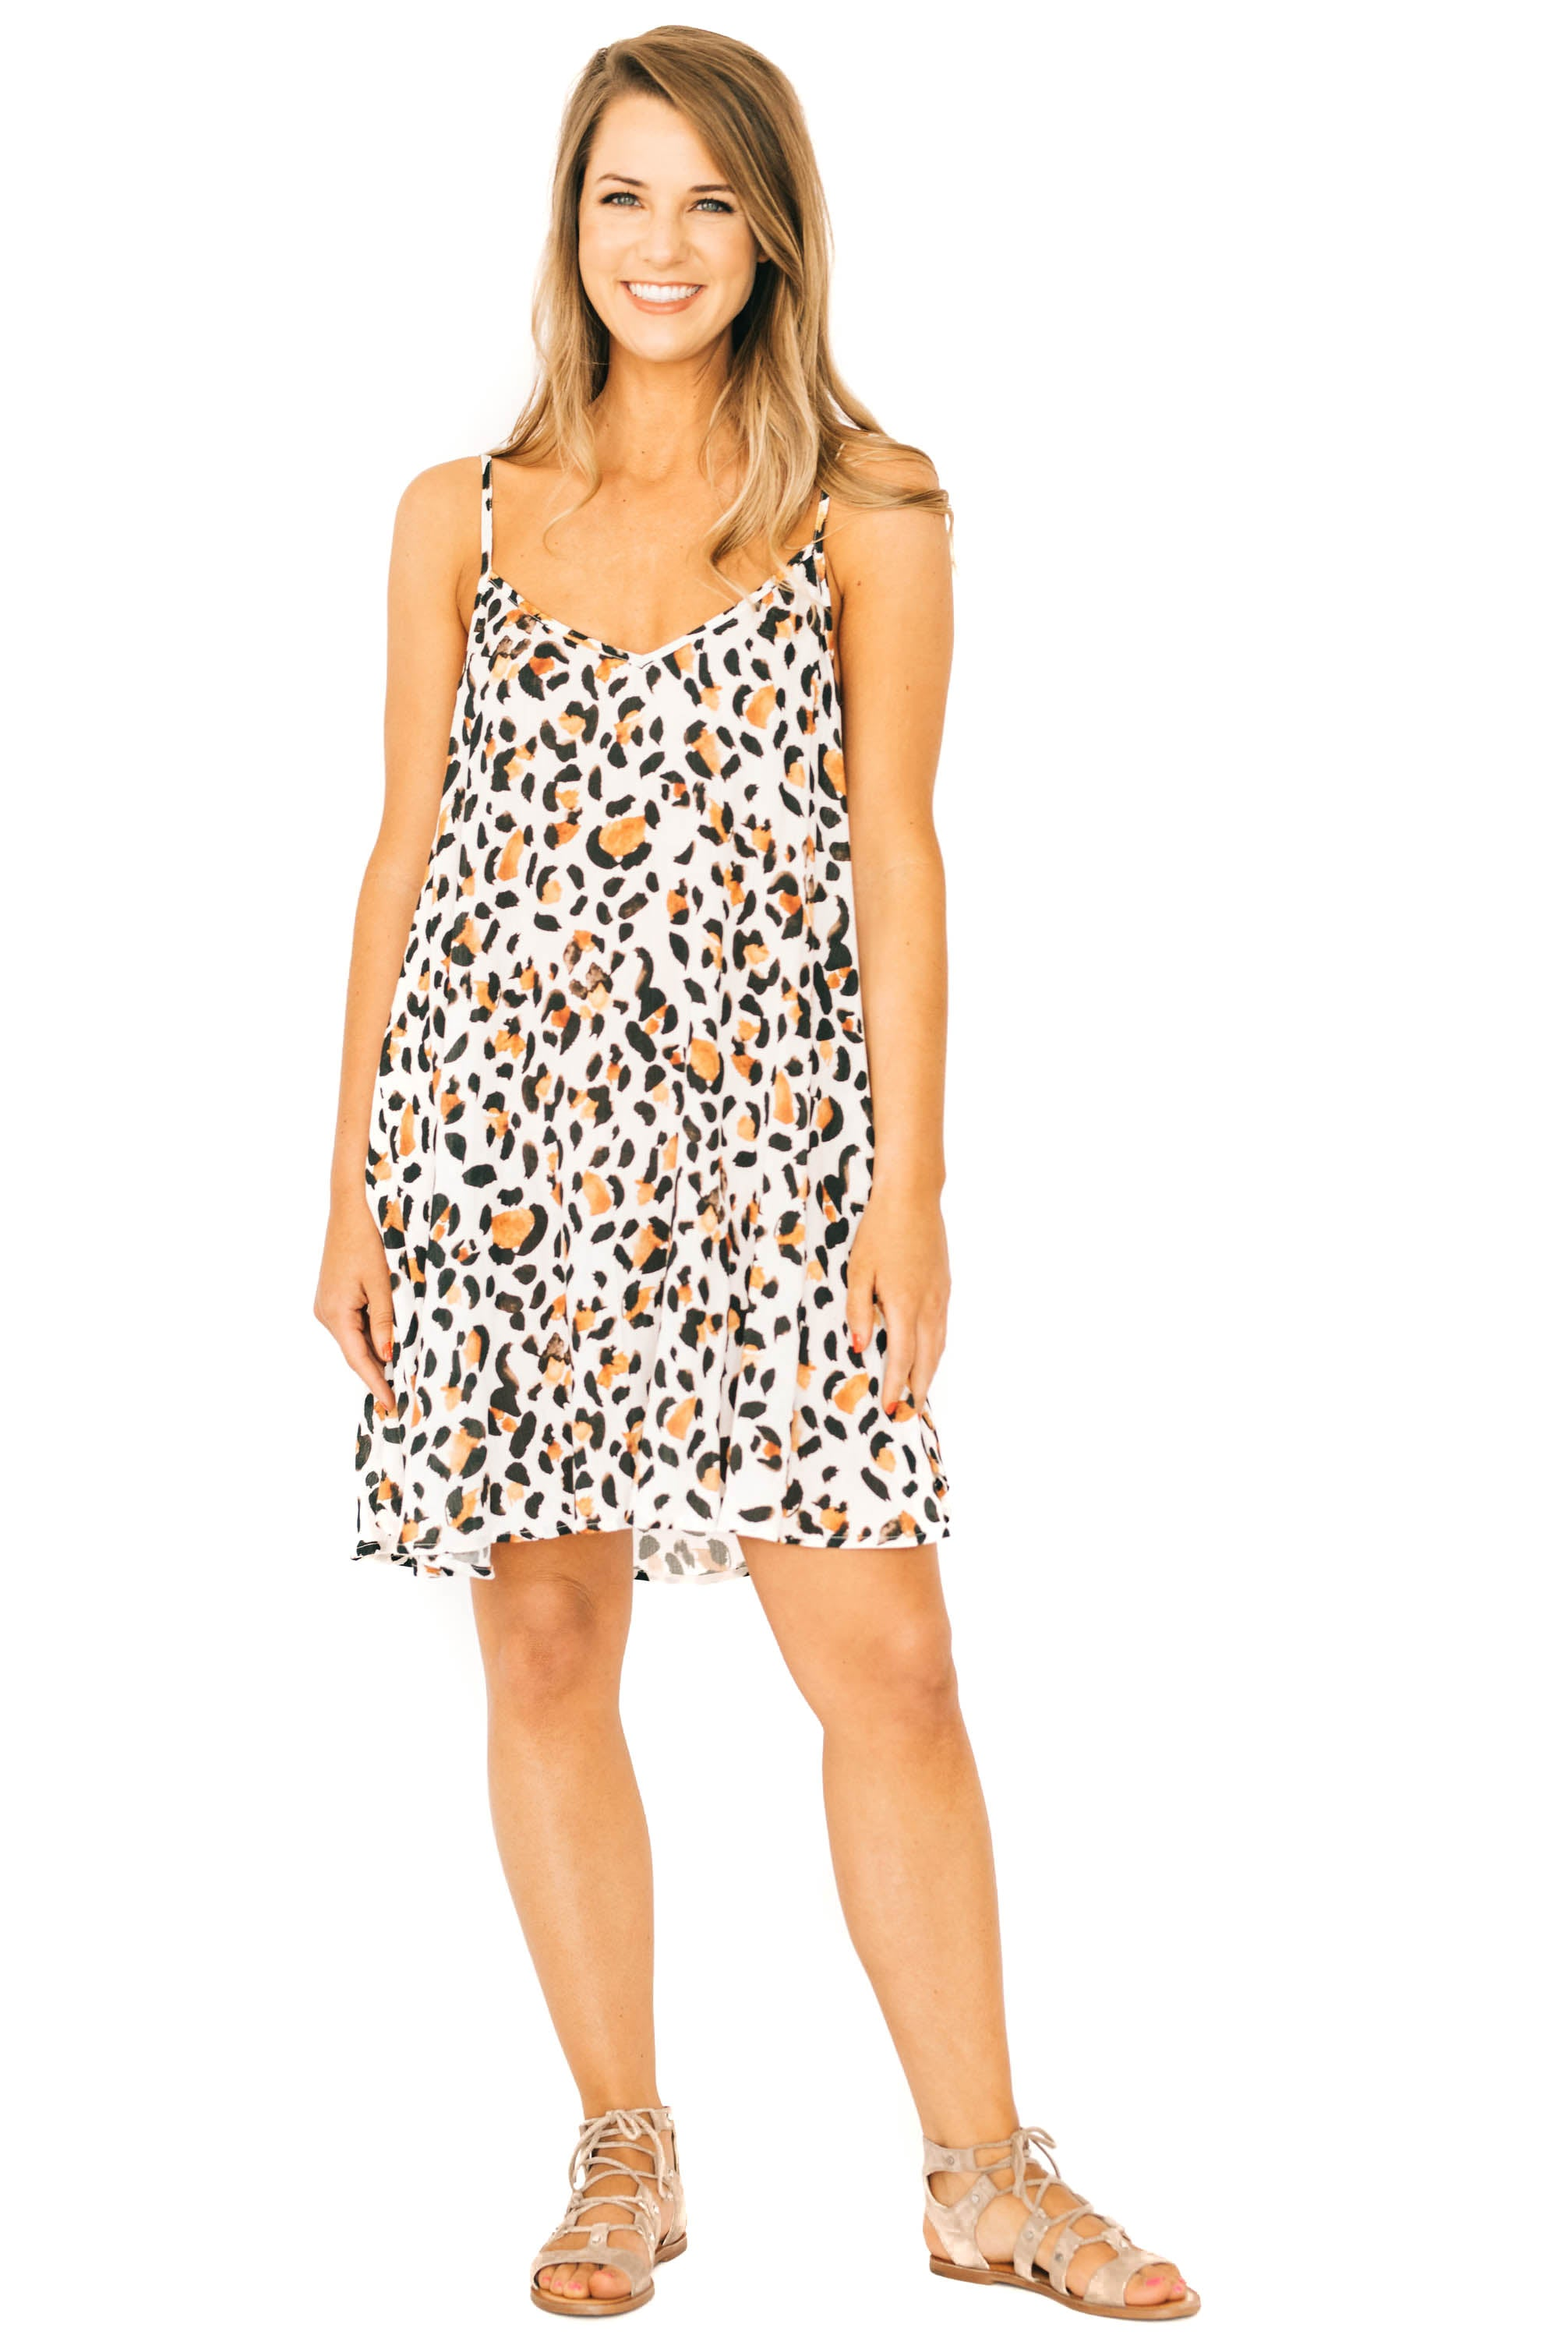 Cheetah-licious Circus Mini Dress